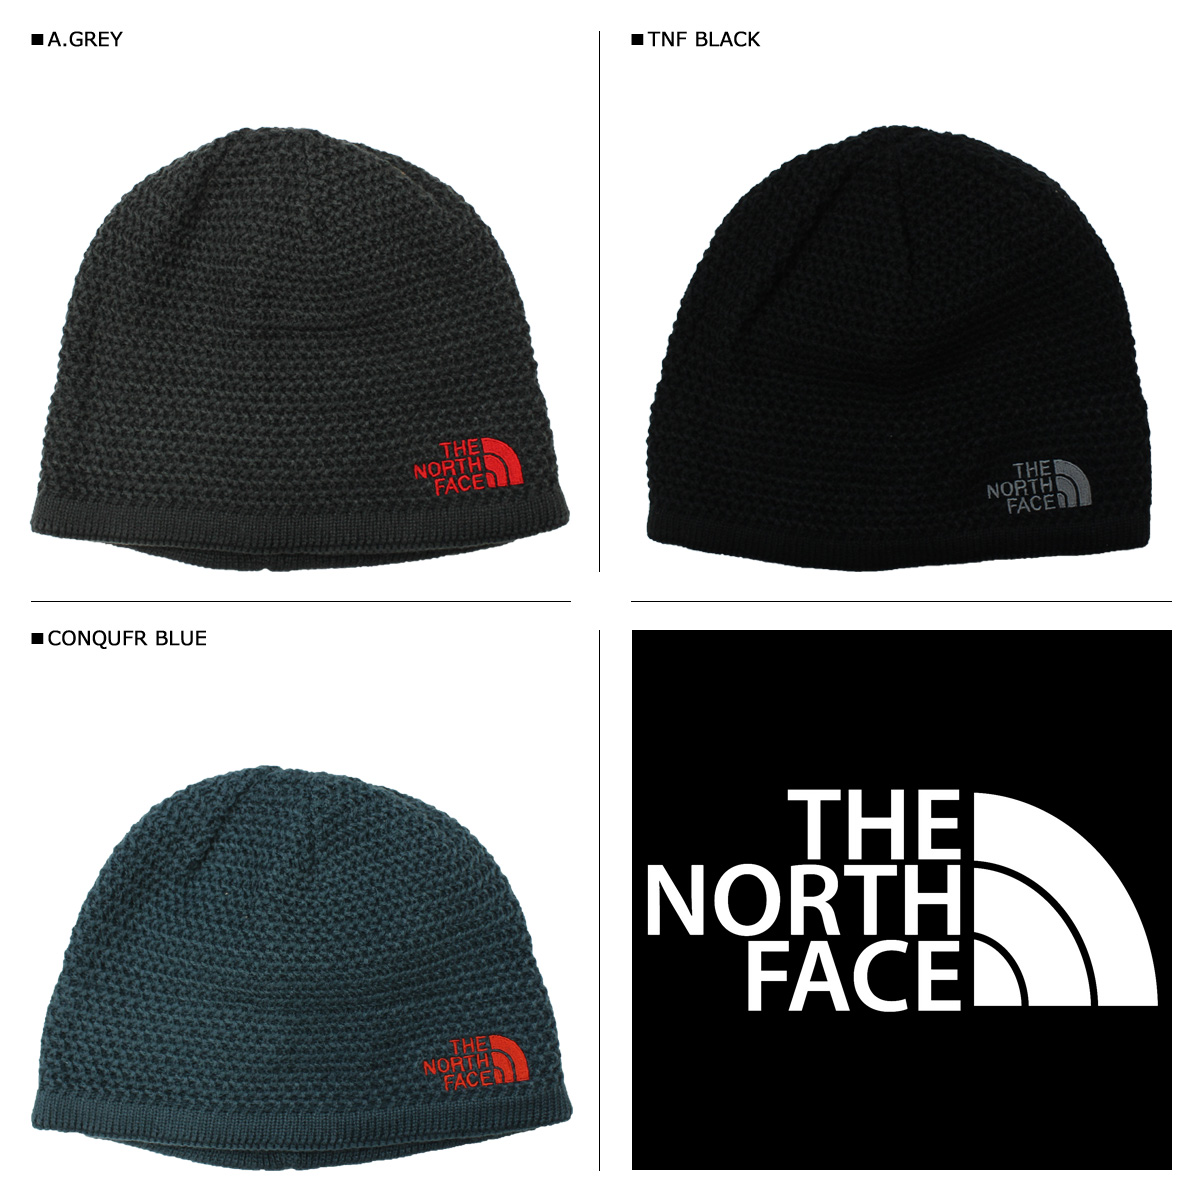 55efe6581ce «Soon» «10 7 days stock» north face THE NORTH FACE men s women s knit hat  Beanie knit Cap ABFN 3 color WICKED BEANIE  10 7 new in stock